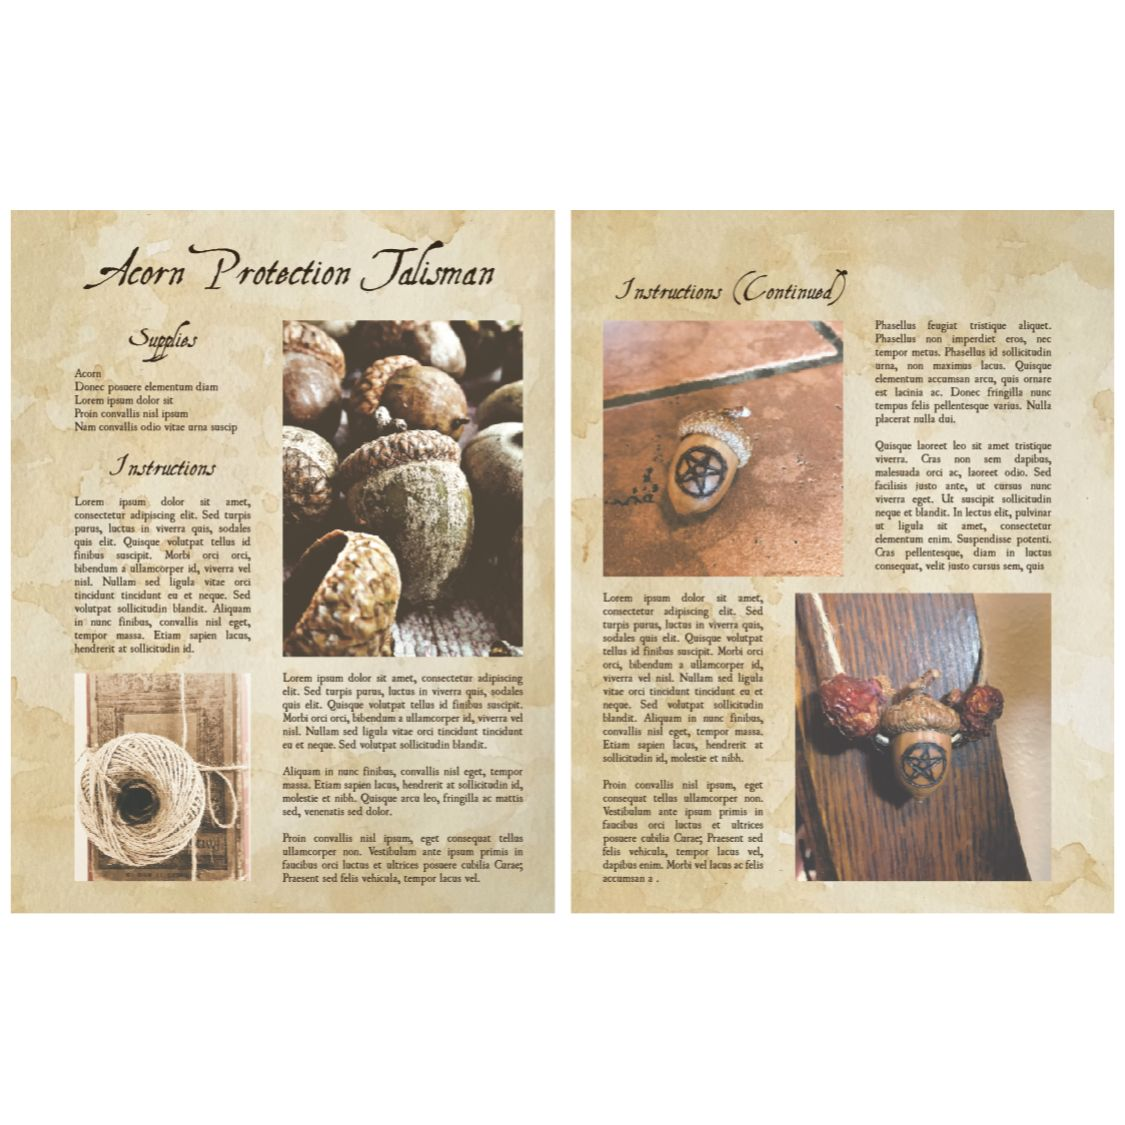 Oak Protection Talisman Book Of Shadows Pages From